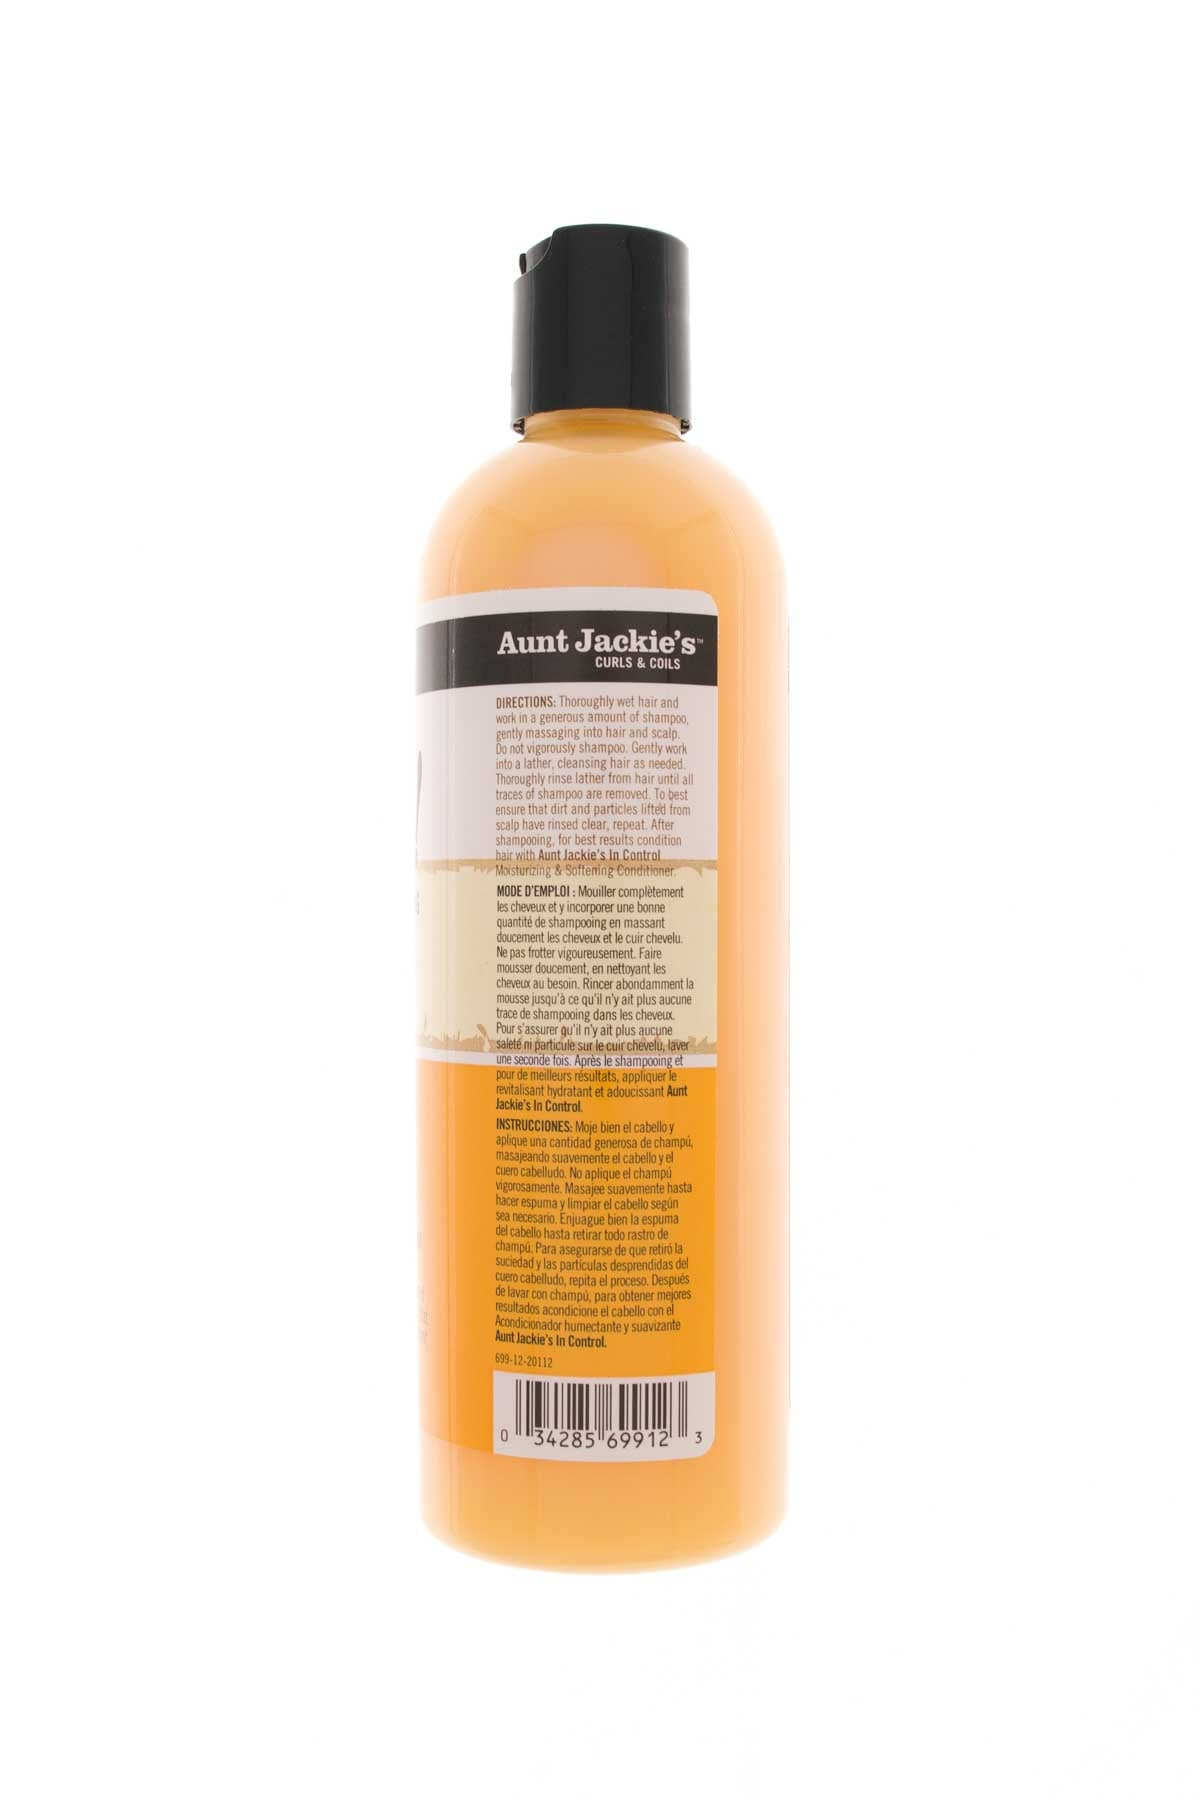 Oh So Clean Shampoo for curly hair- Aunt Jackie's